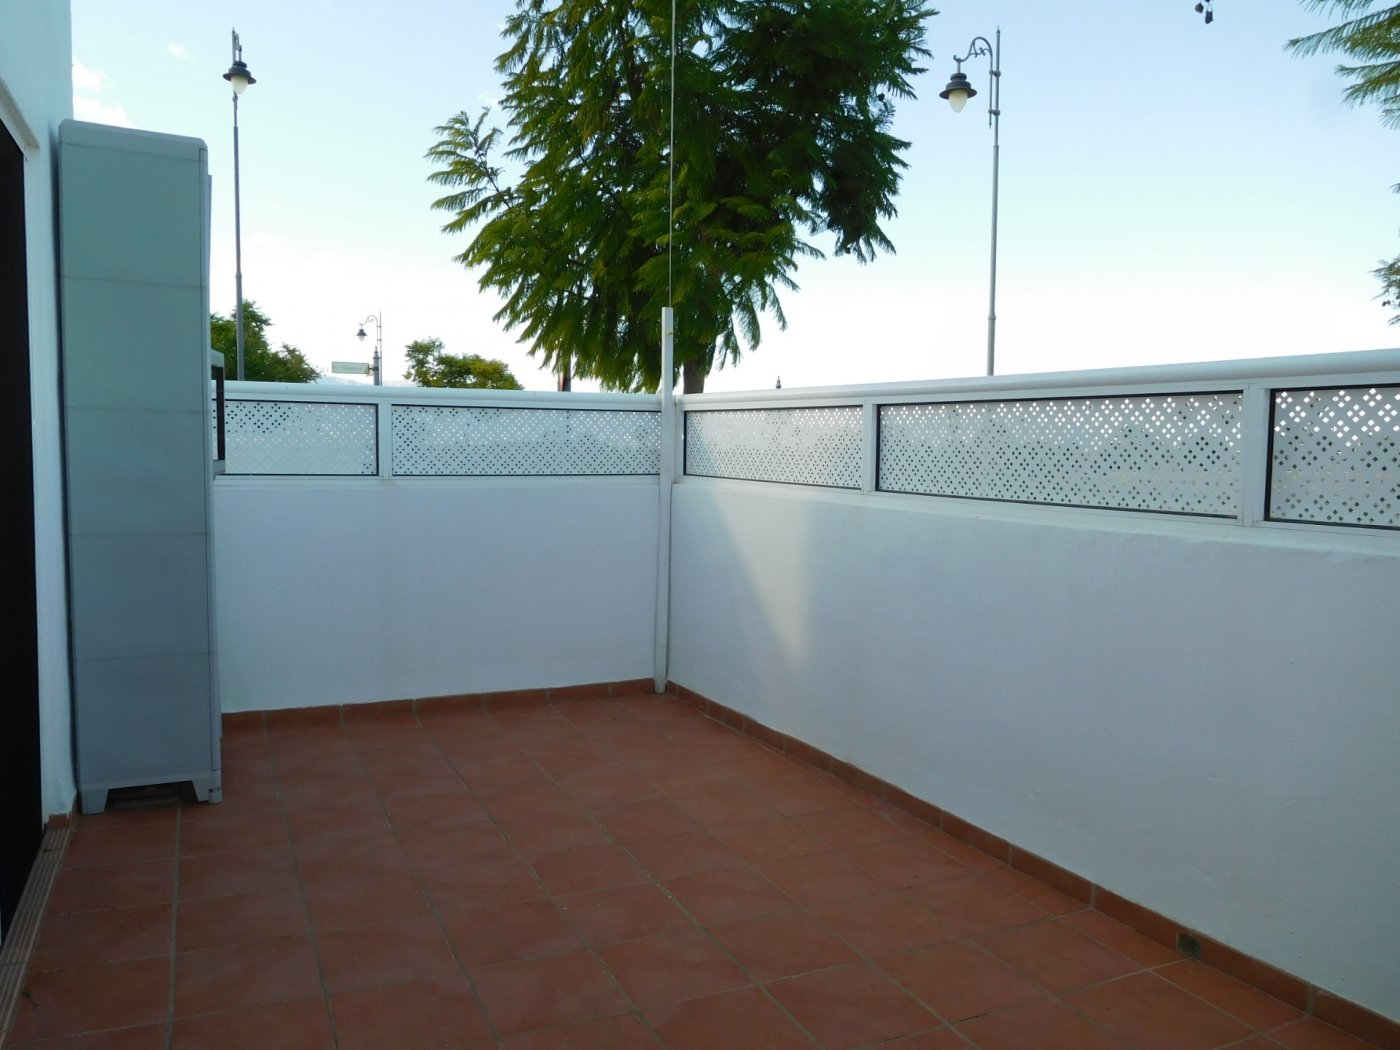 Gallery Image 18 of Flat For rent in Condado De Alhama, Alhama De Murcia With Pool